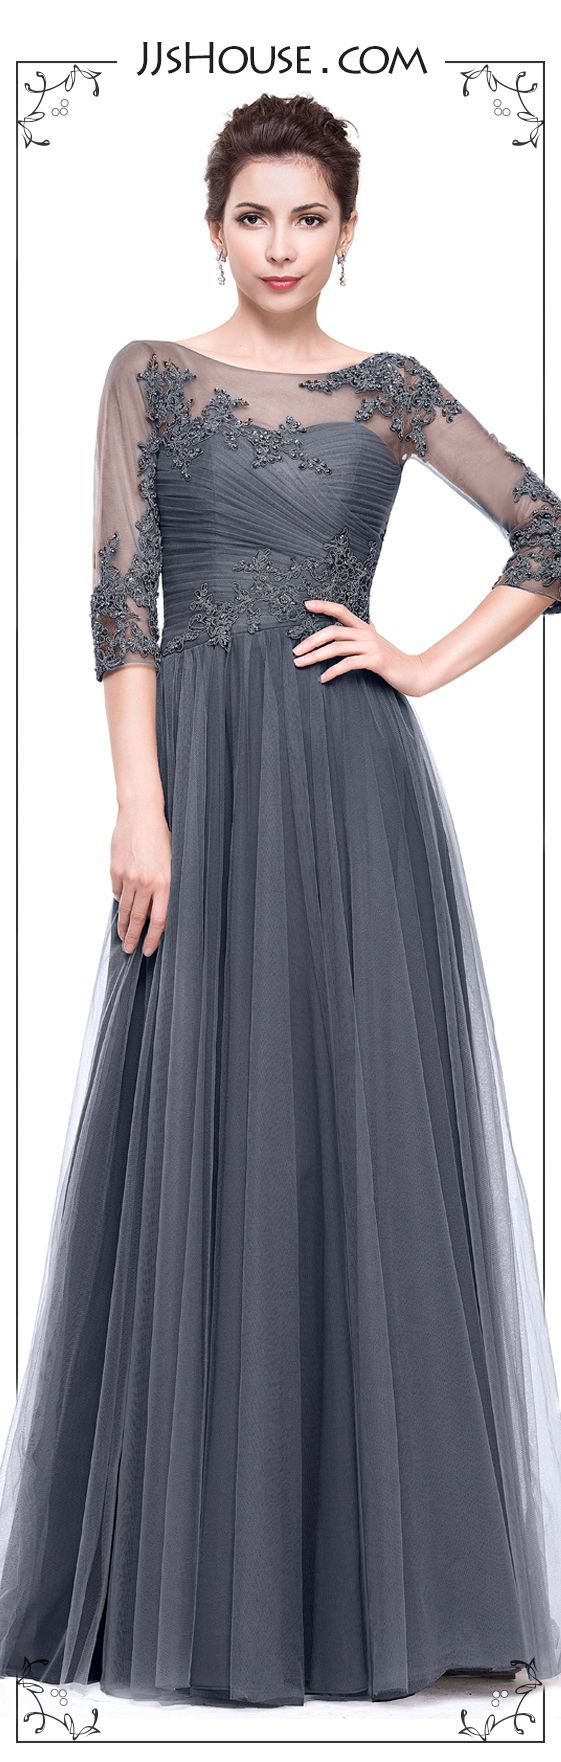 A Very Classic Evening Dress from #JJsHouse